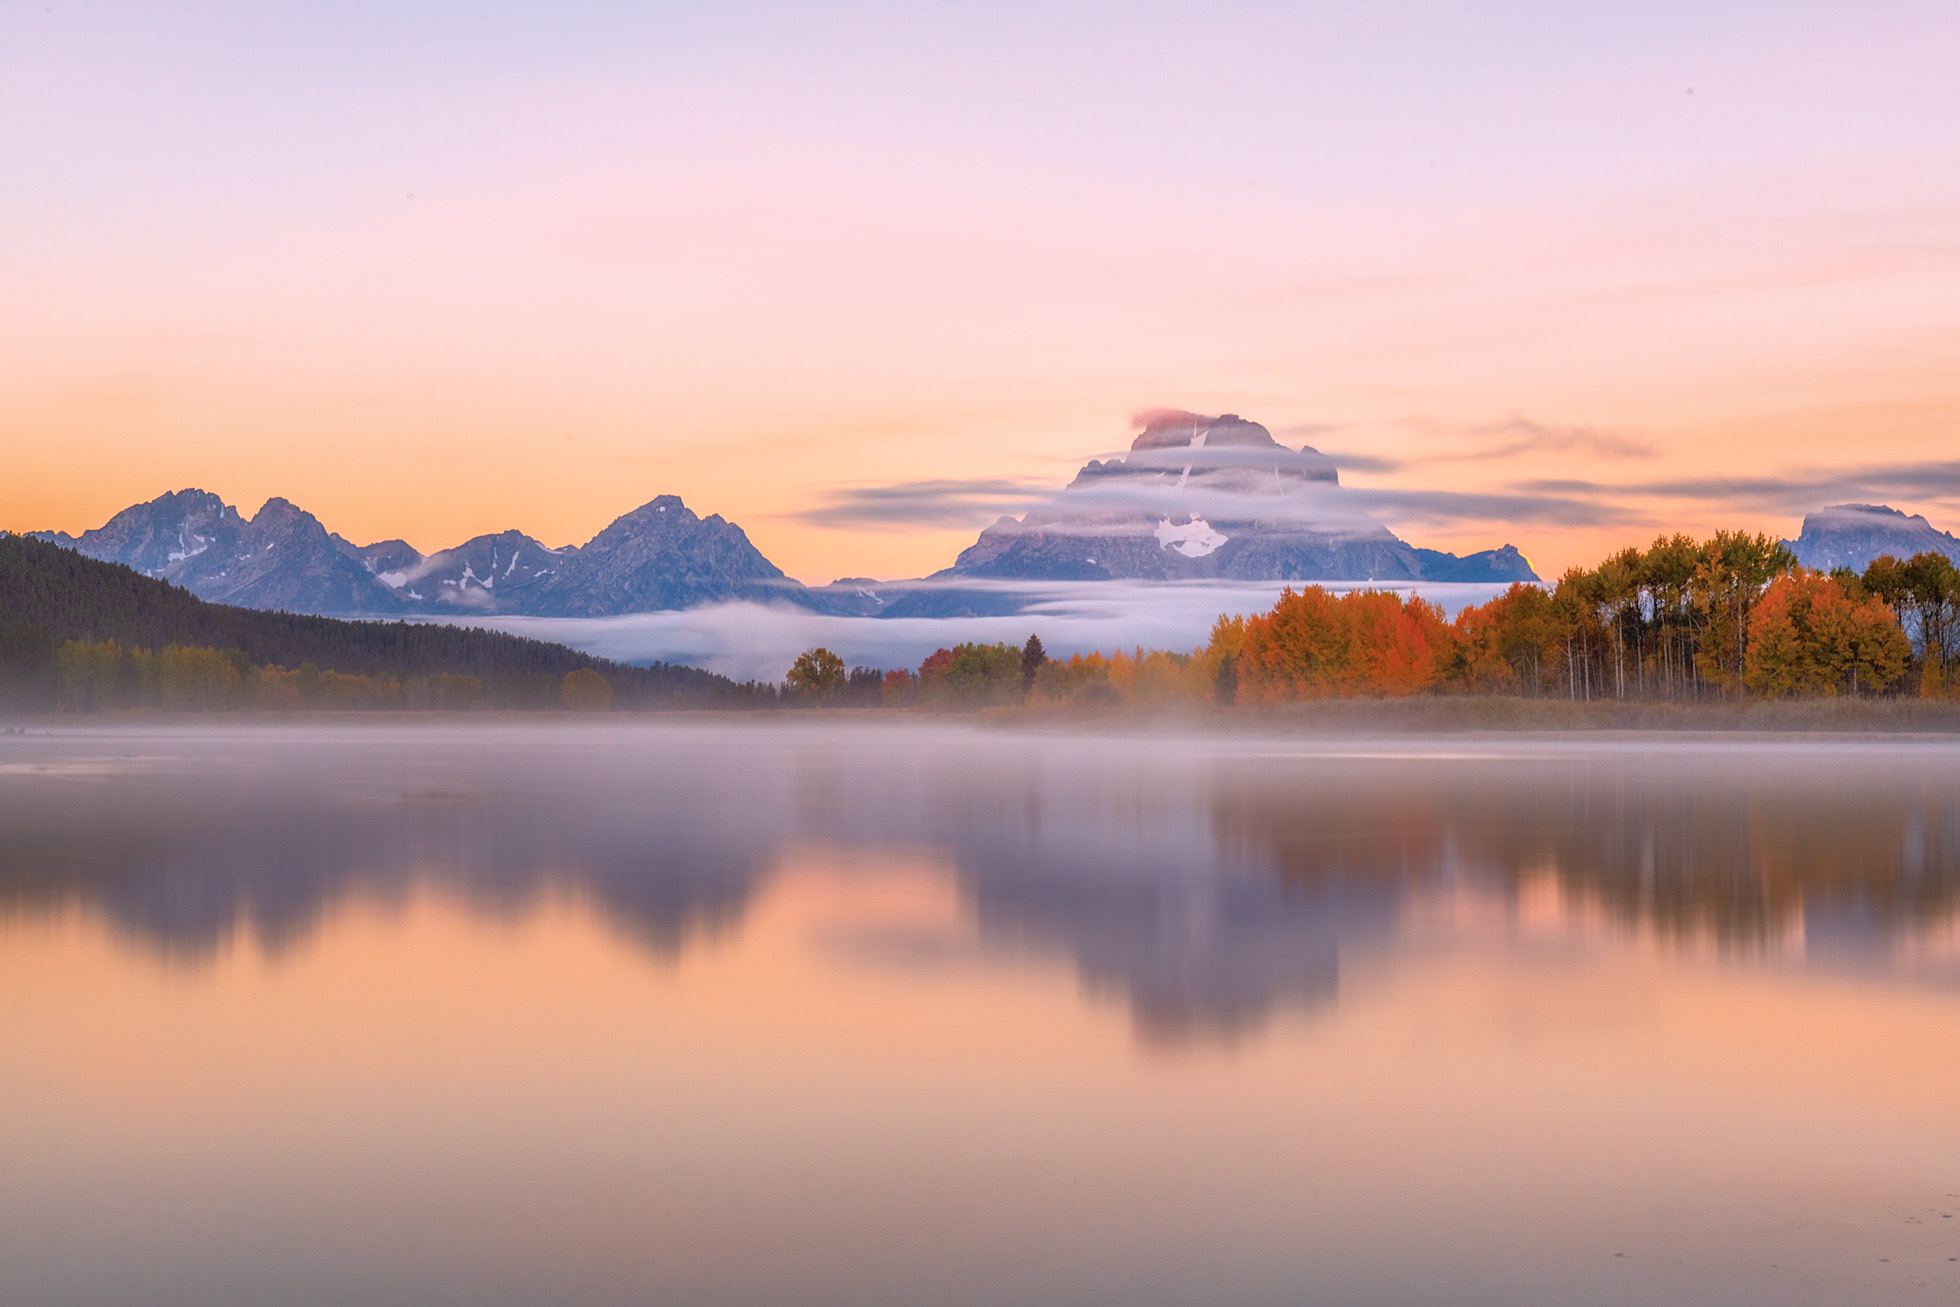 Sunrise at the iconic Oxbow Bend in September 2018